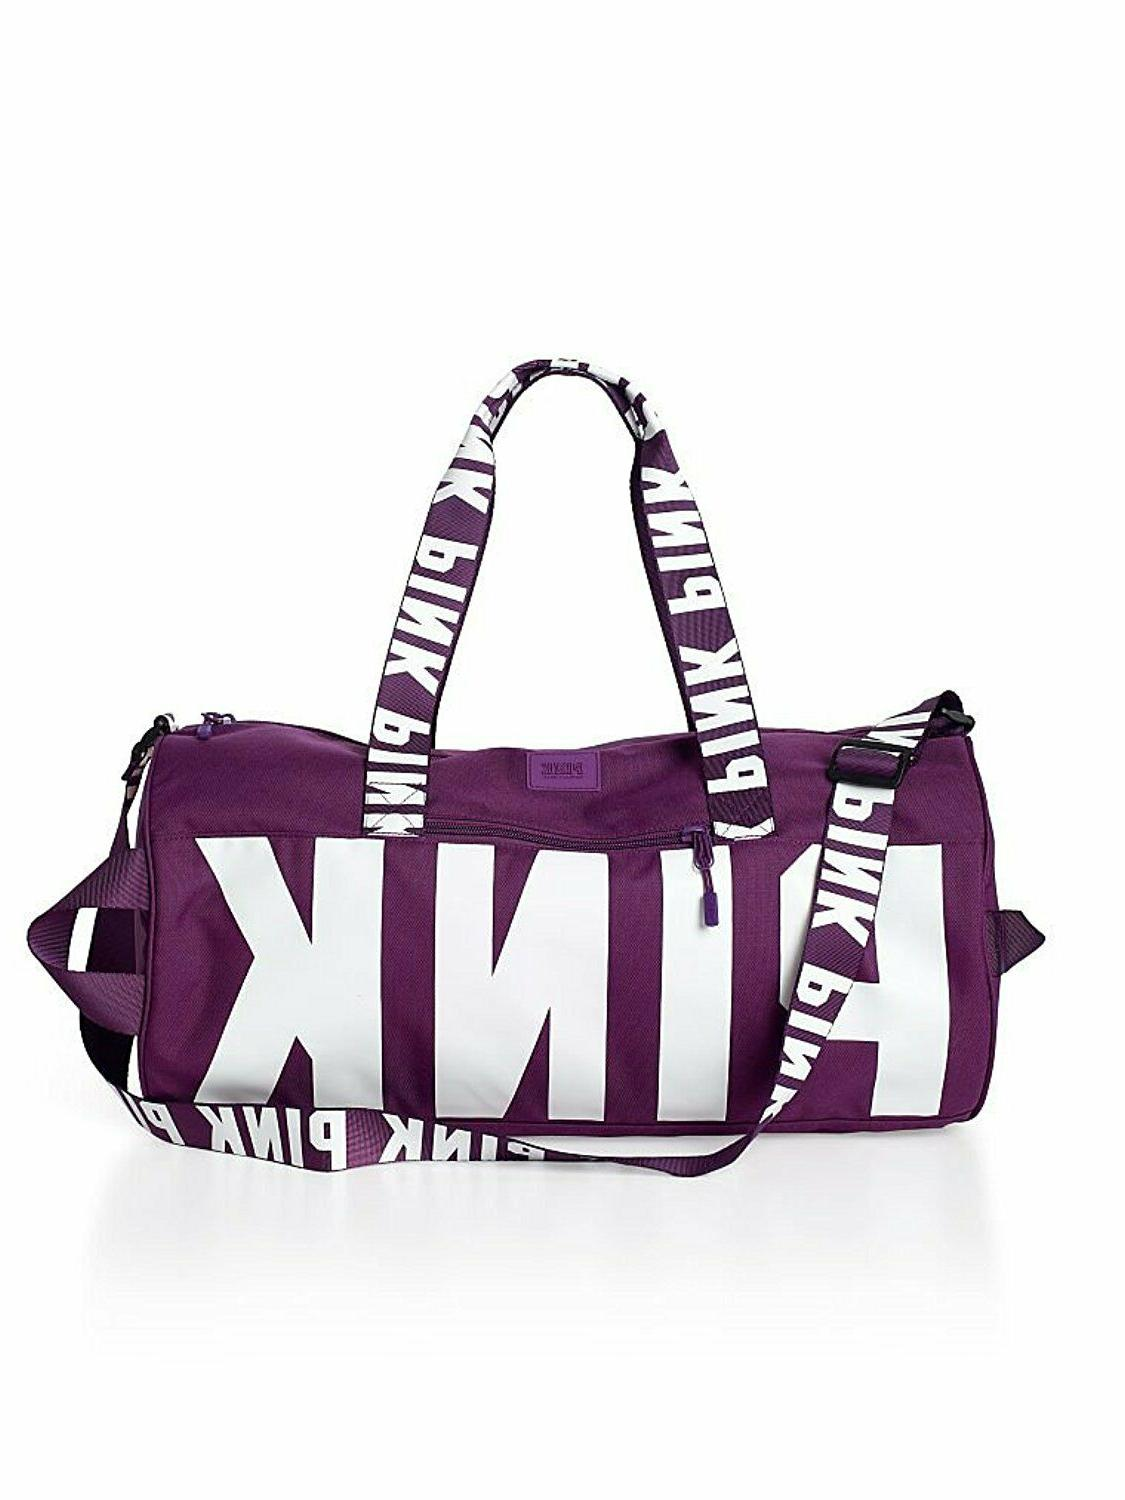 Victorias PINK Duffle Bag Tote VS Gym Travel Overnight Weekend Bag